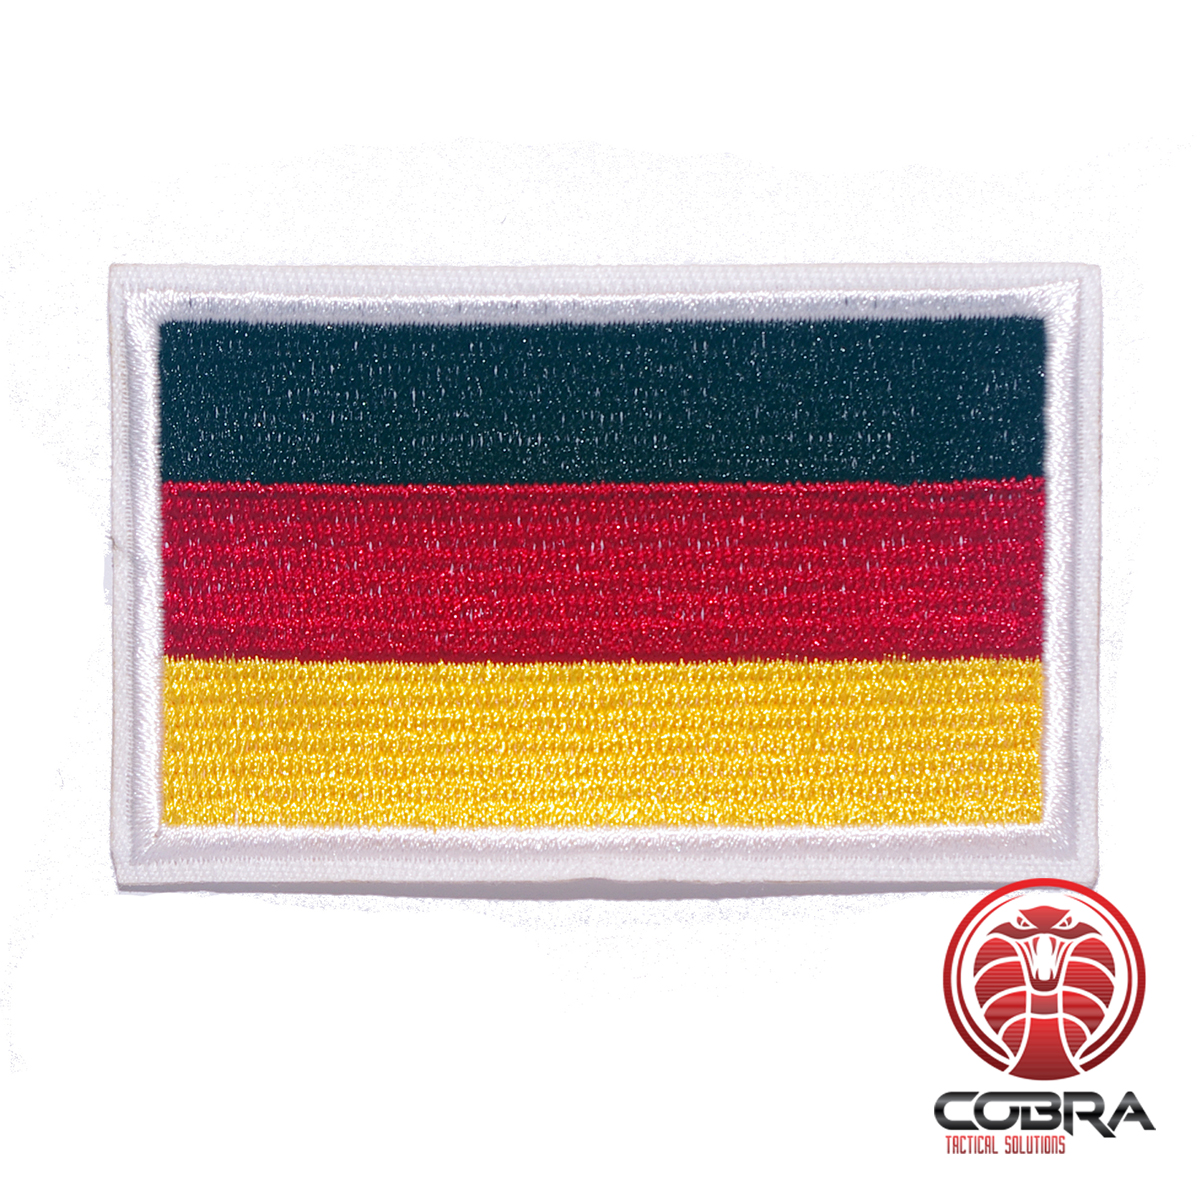 5 GERMANY Flag Iron-On Patch MILITARY Tactical Morale Emblem Embroidered